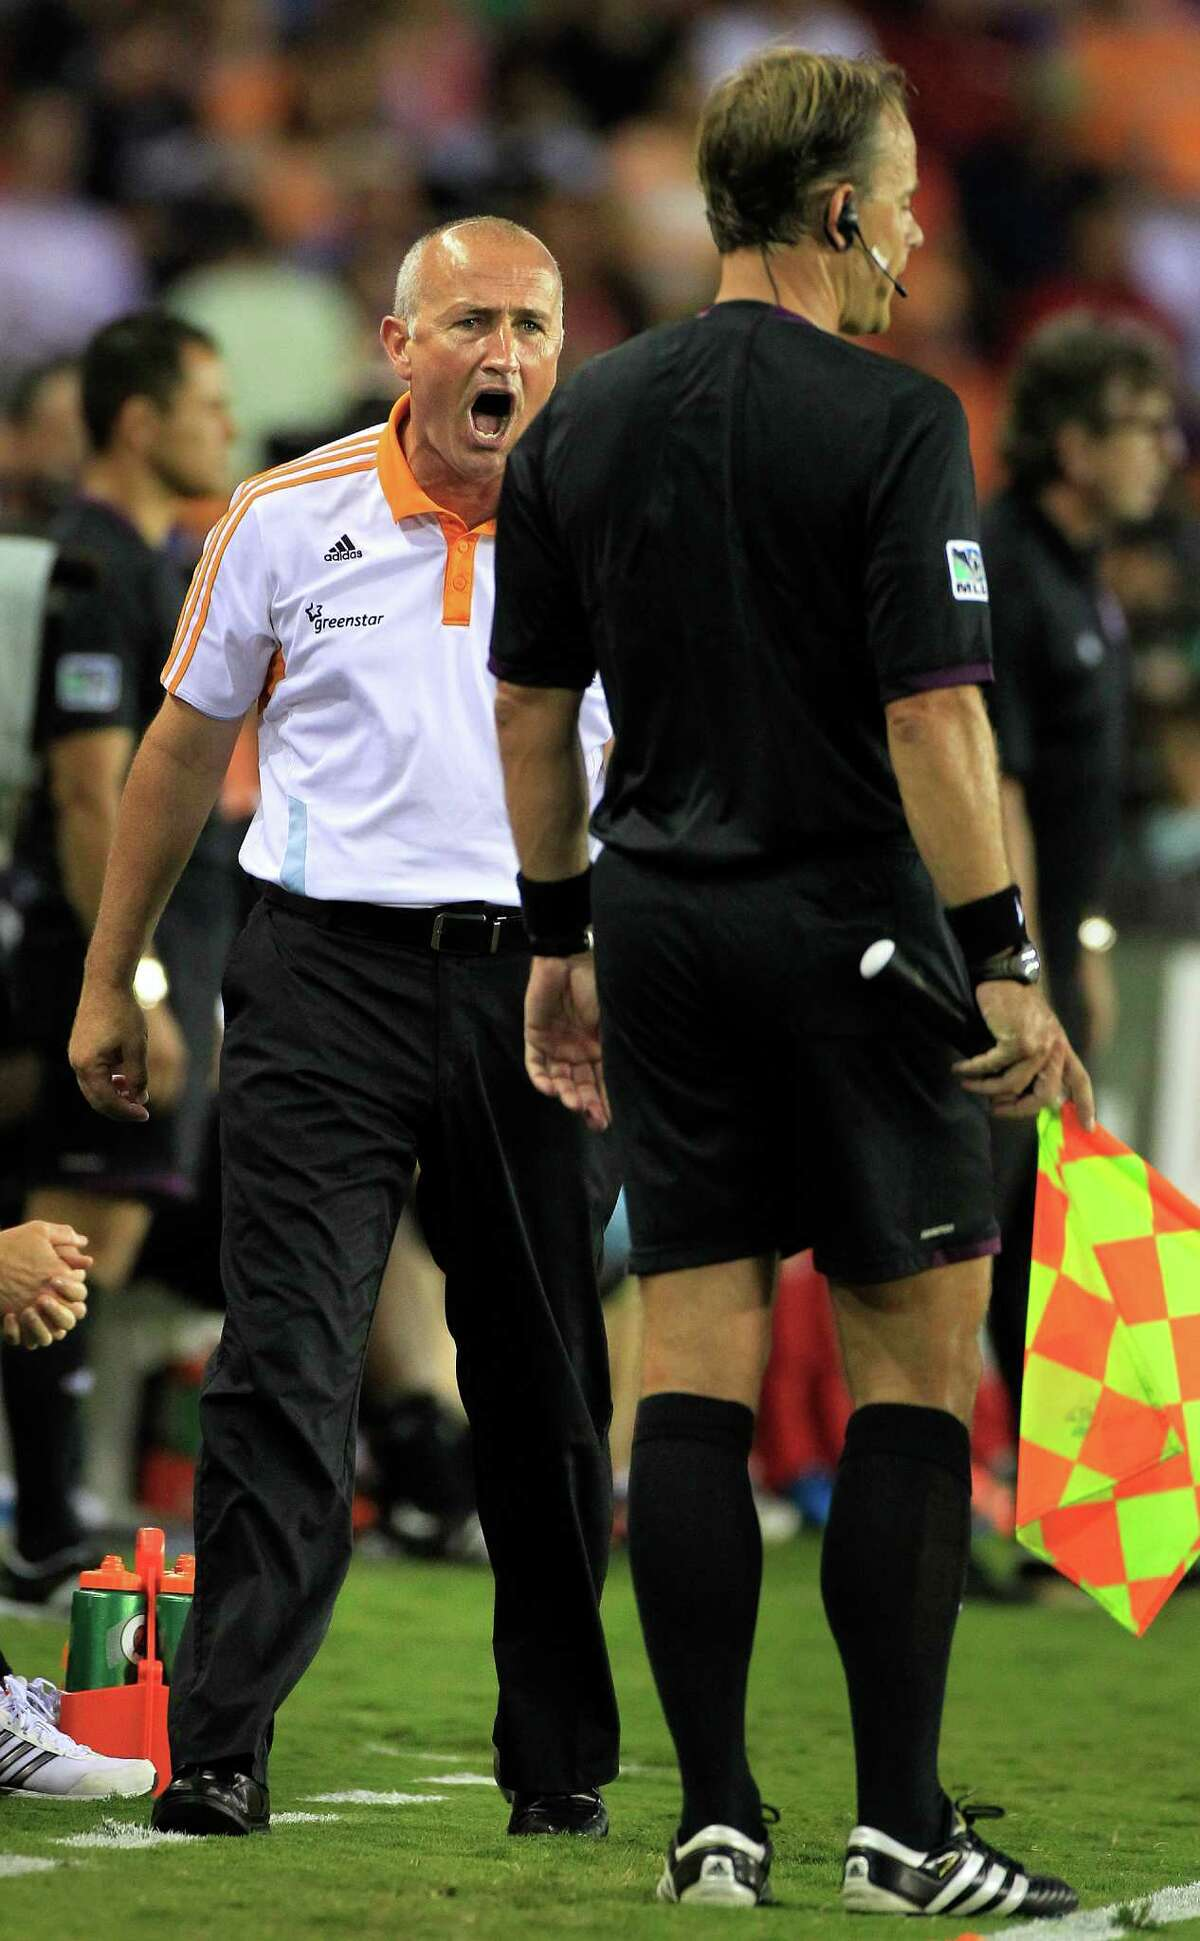 Houston Dynamo head coach Dominic Kinnear, left, yells at a referee during the second half of a soccer game against Toronto FC at BBVA Compass Stadium Wednesday, June 20, 2012, in Houston. The game ended in a 3-3 draw.